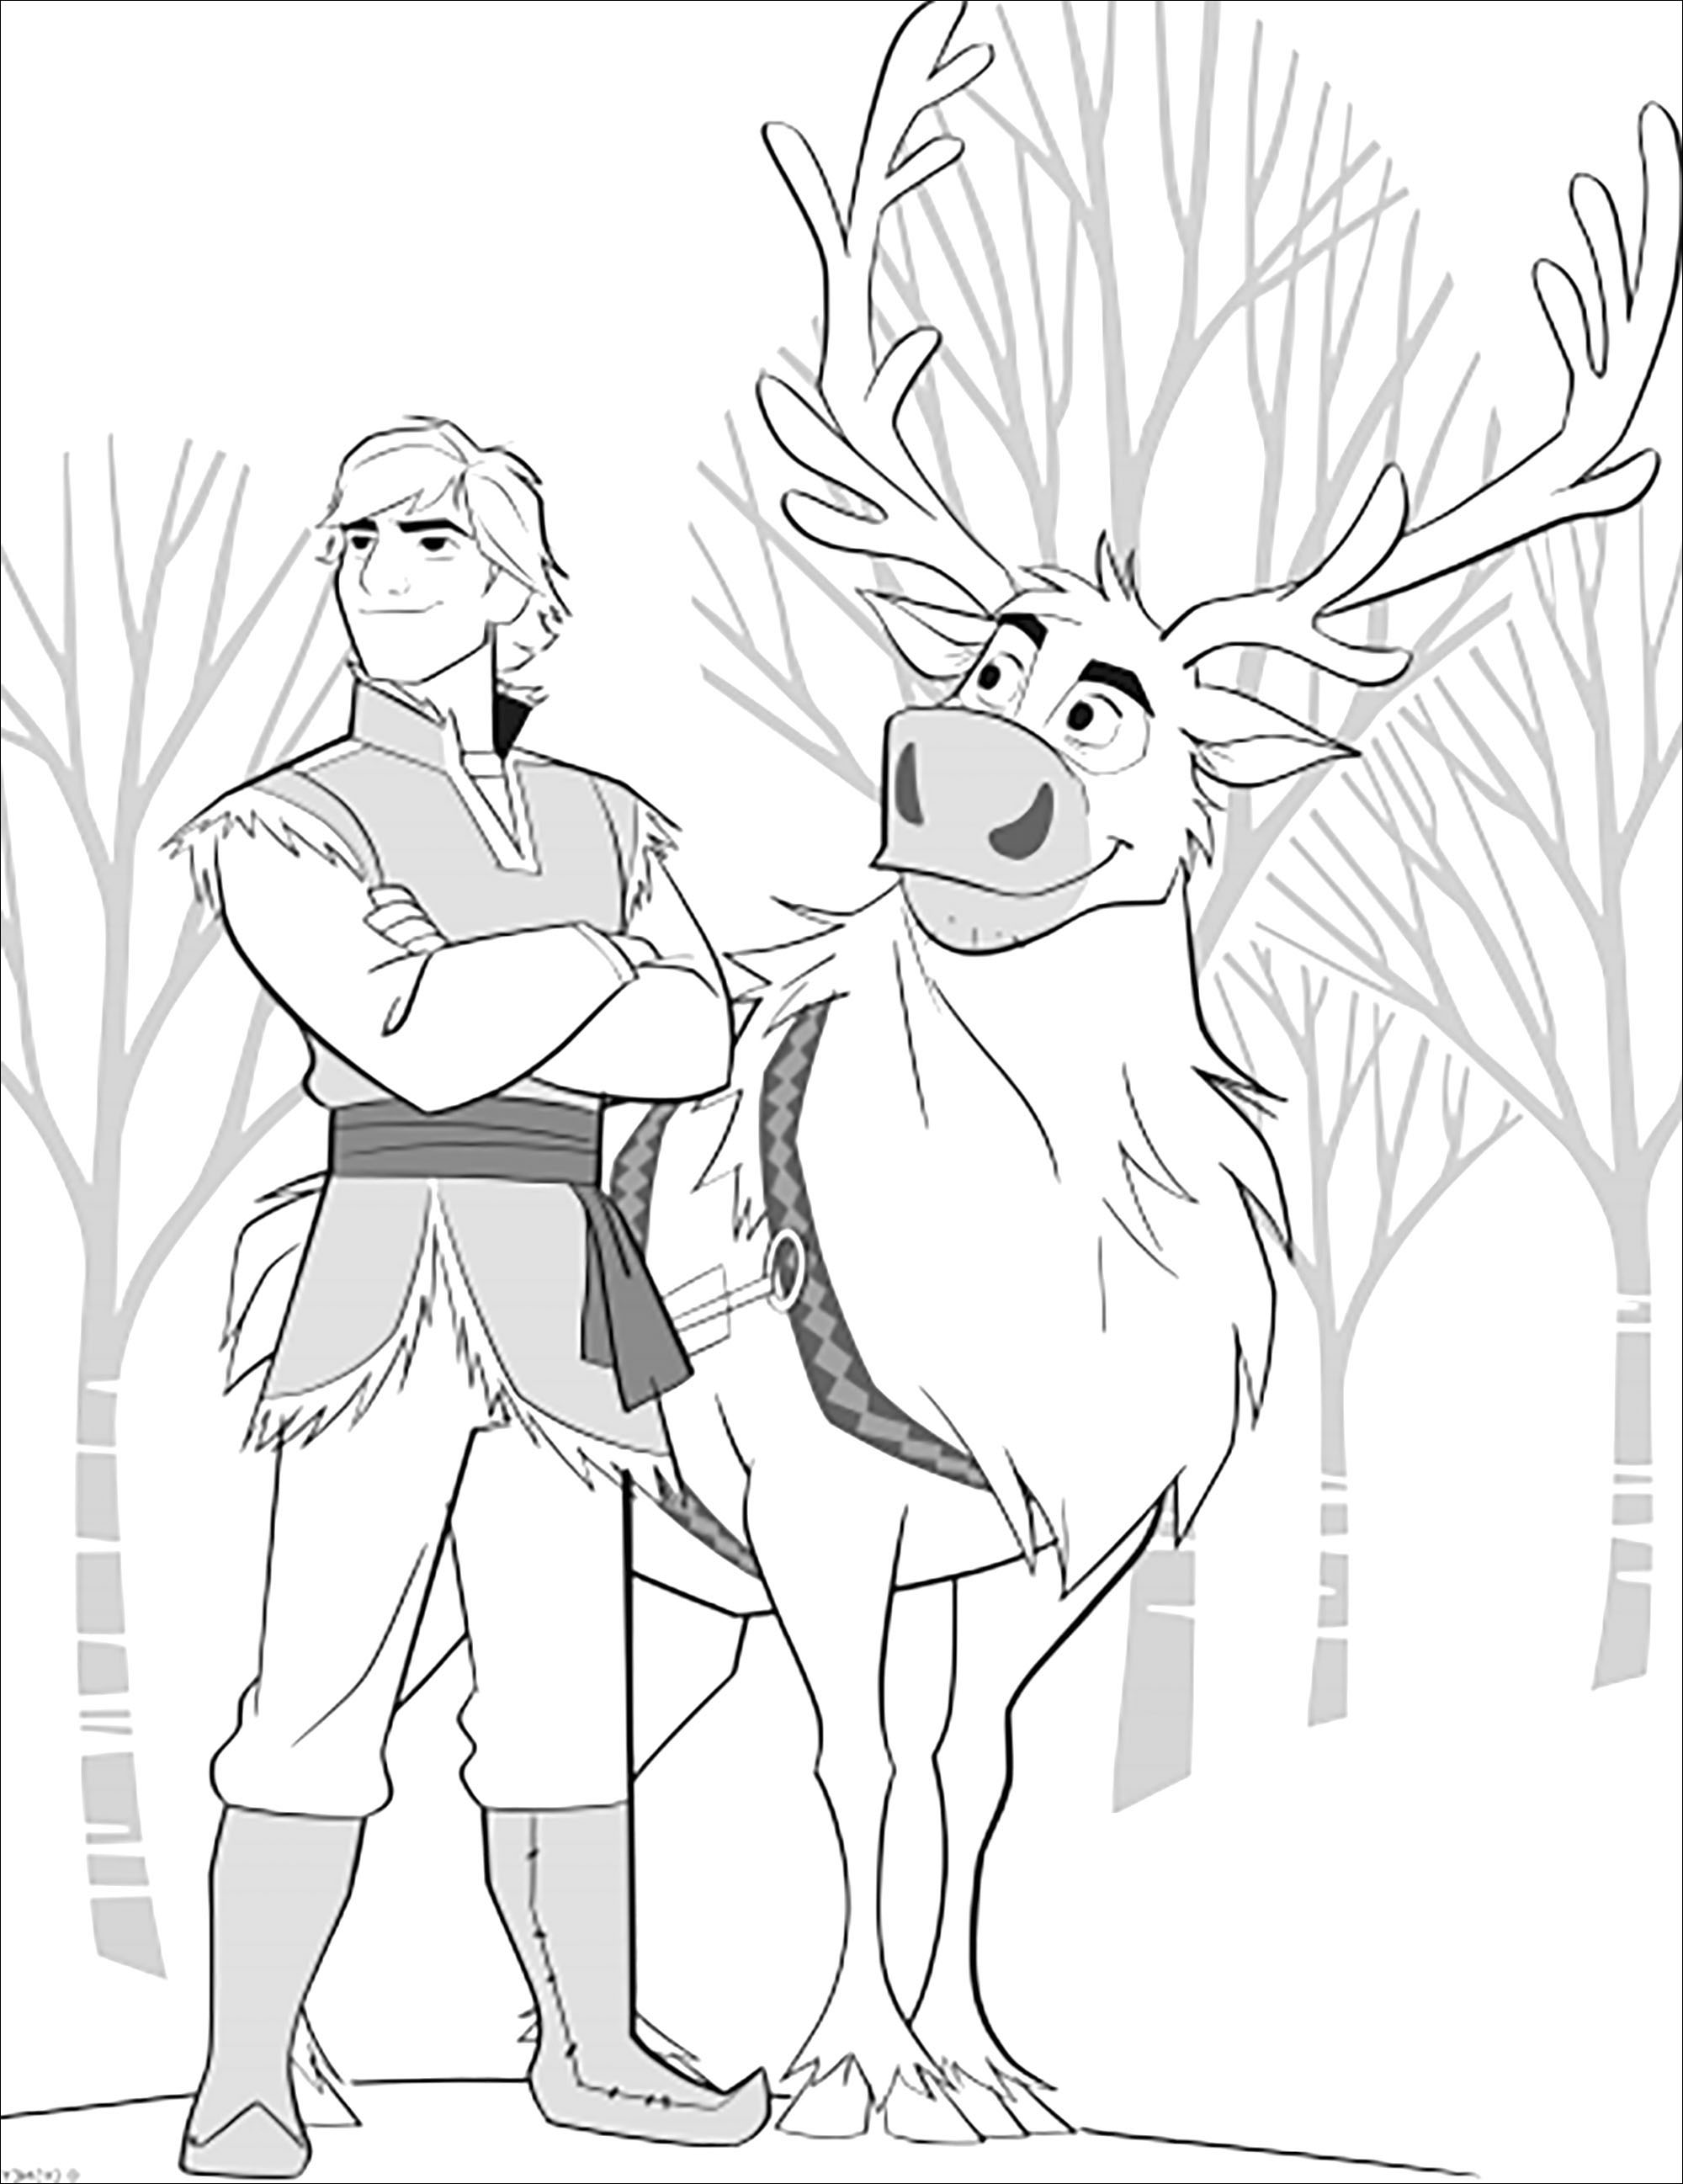 Frozen 2 Sven Kristoff Without Text Frozen 2 Kids Coloring Pages